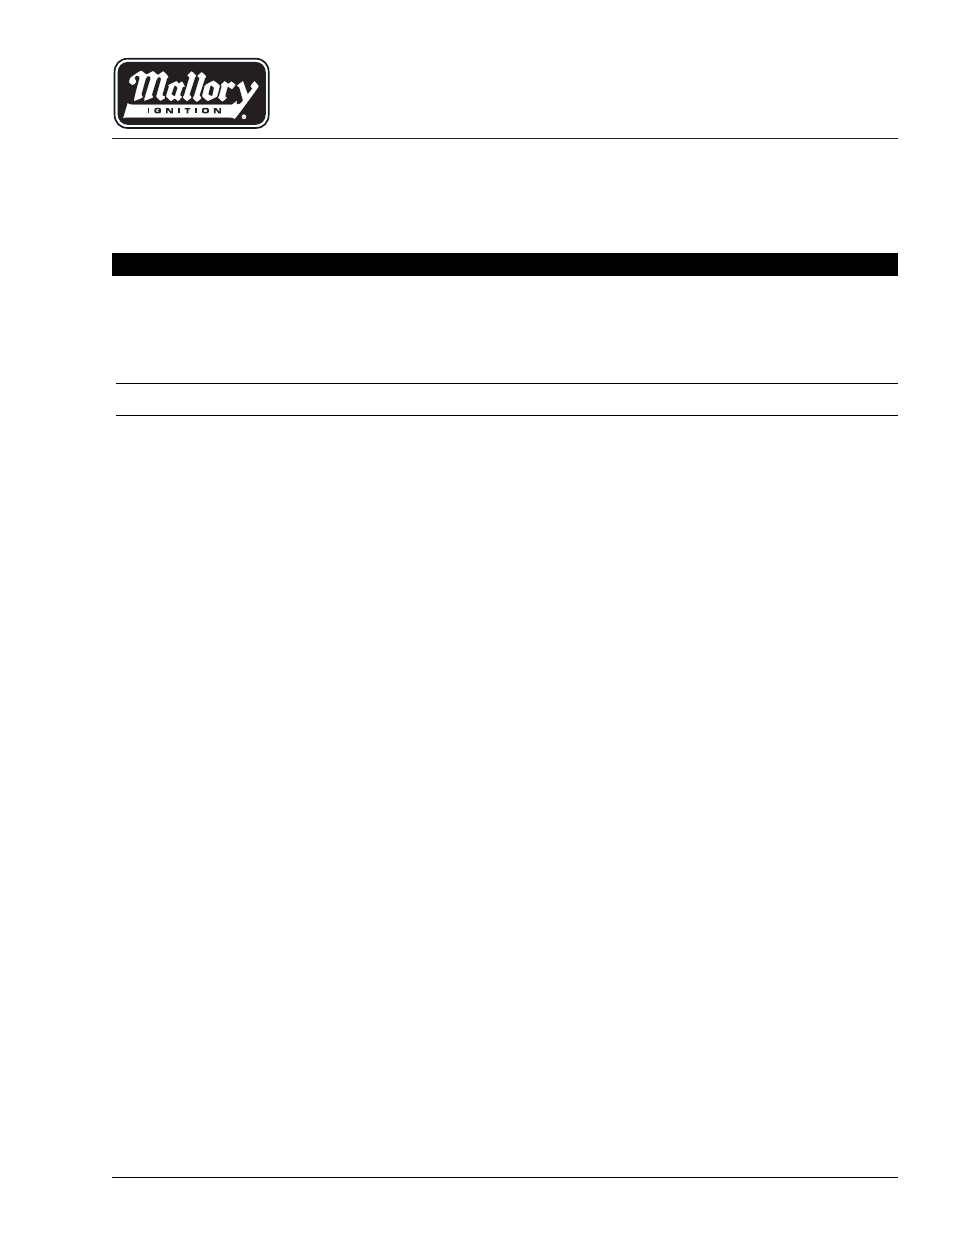 mallory ignition mallory unilite distributor page1 mallory ignition mallory unilite distributor user manual 13 mallory ignition wiring diagram at panicattacktreatment.co